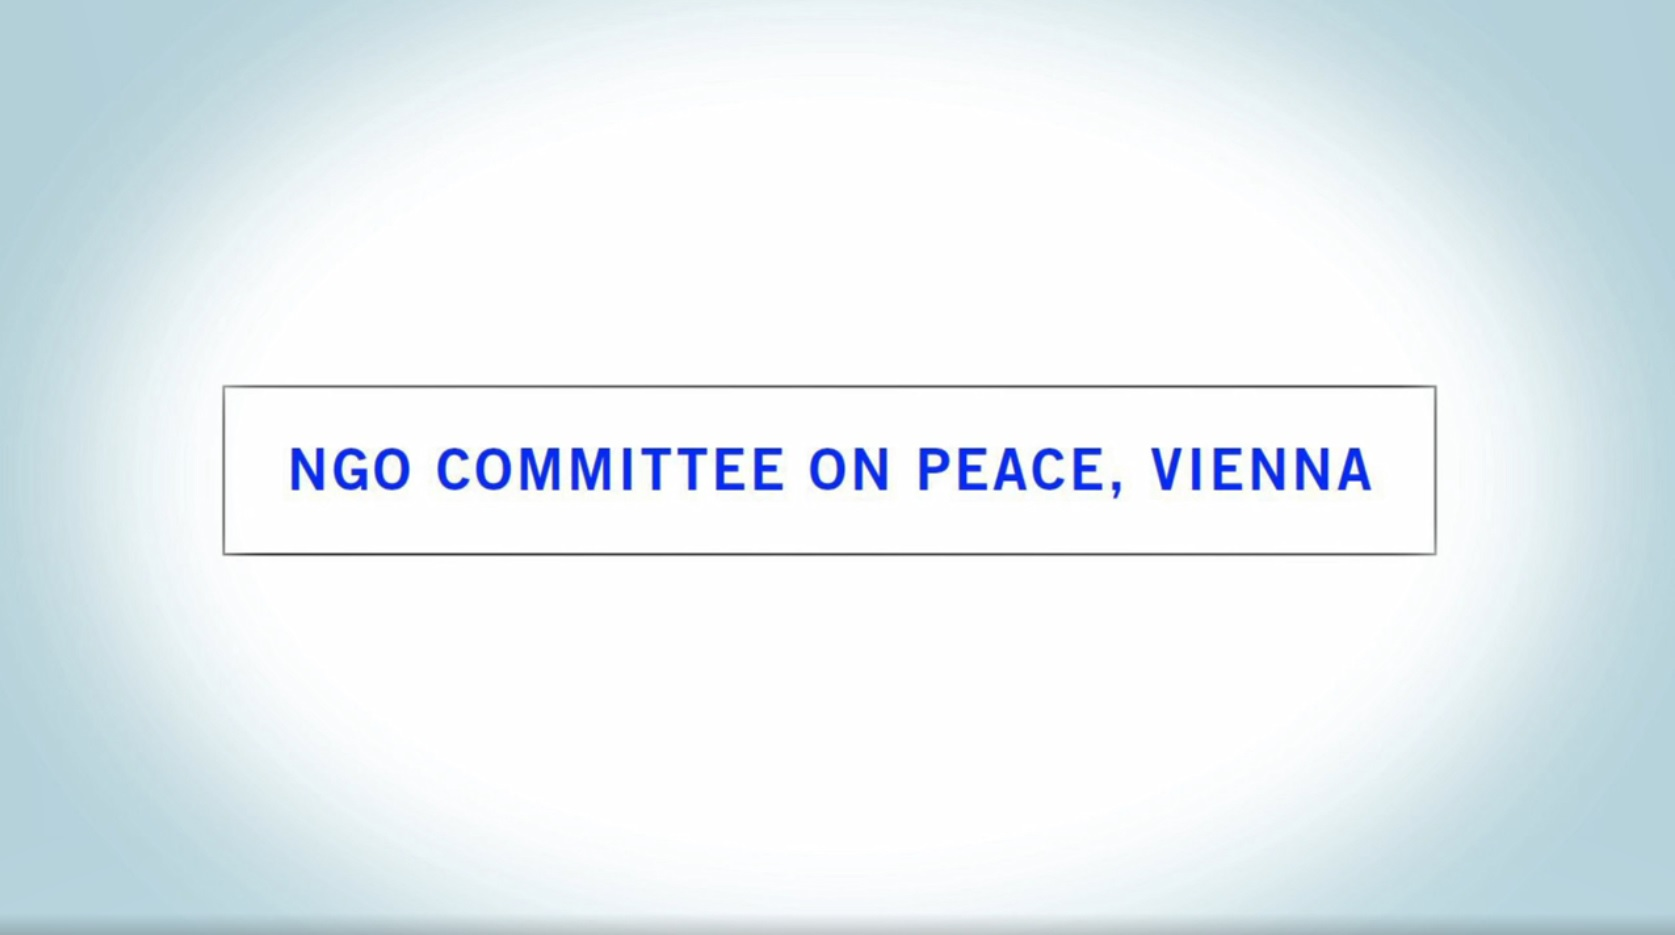 NGO Committee on Peace Vienna